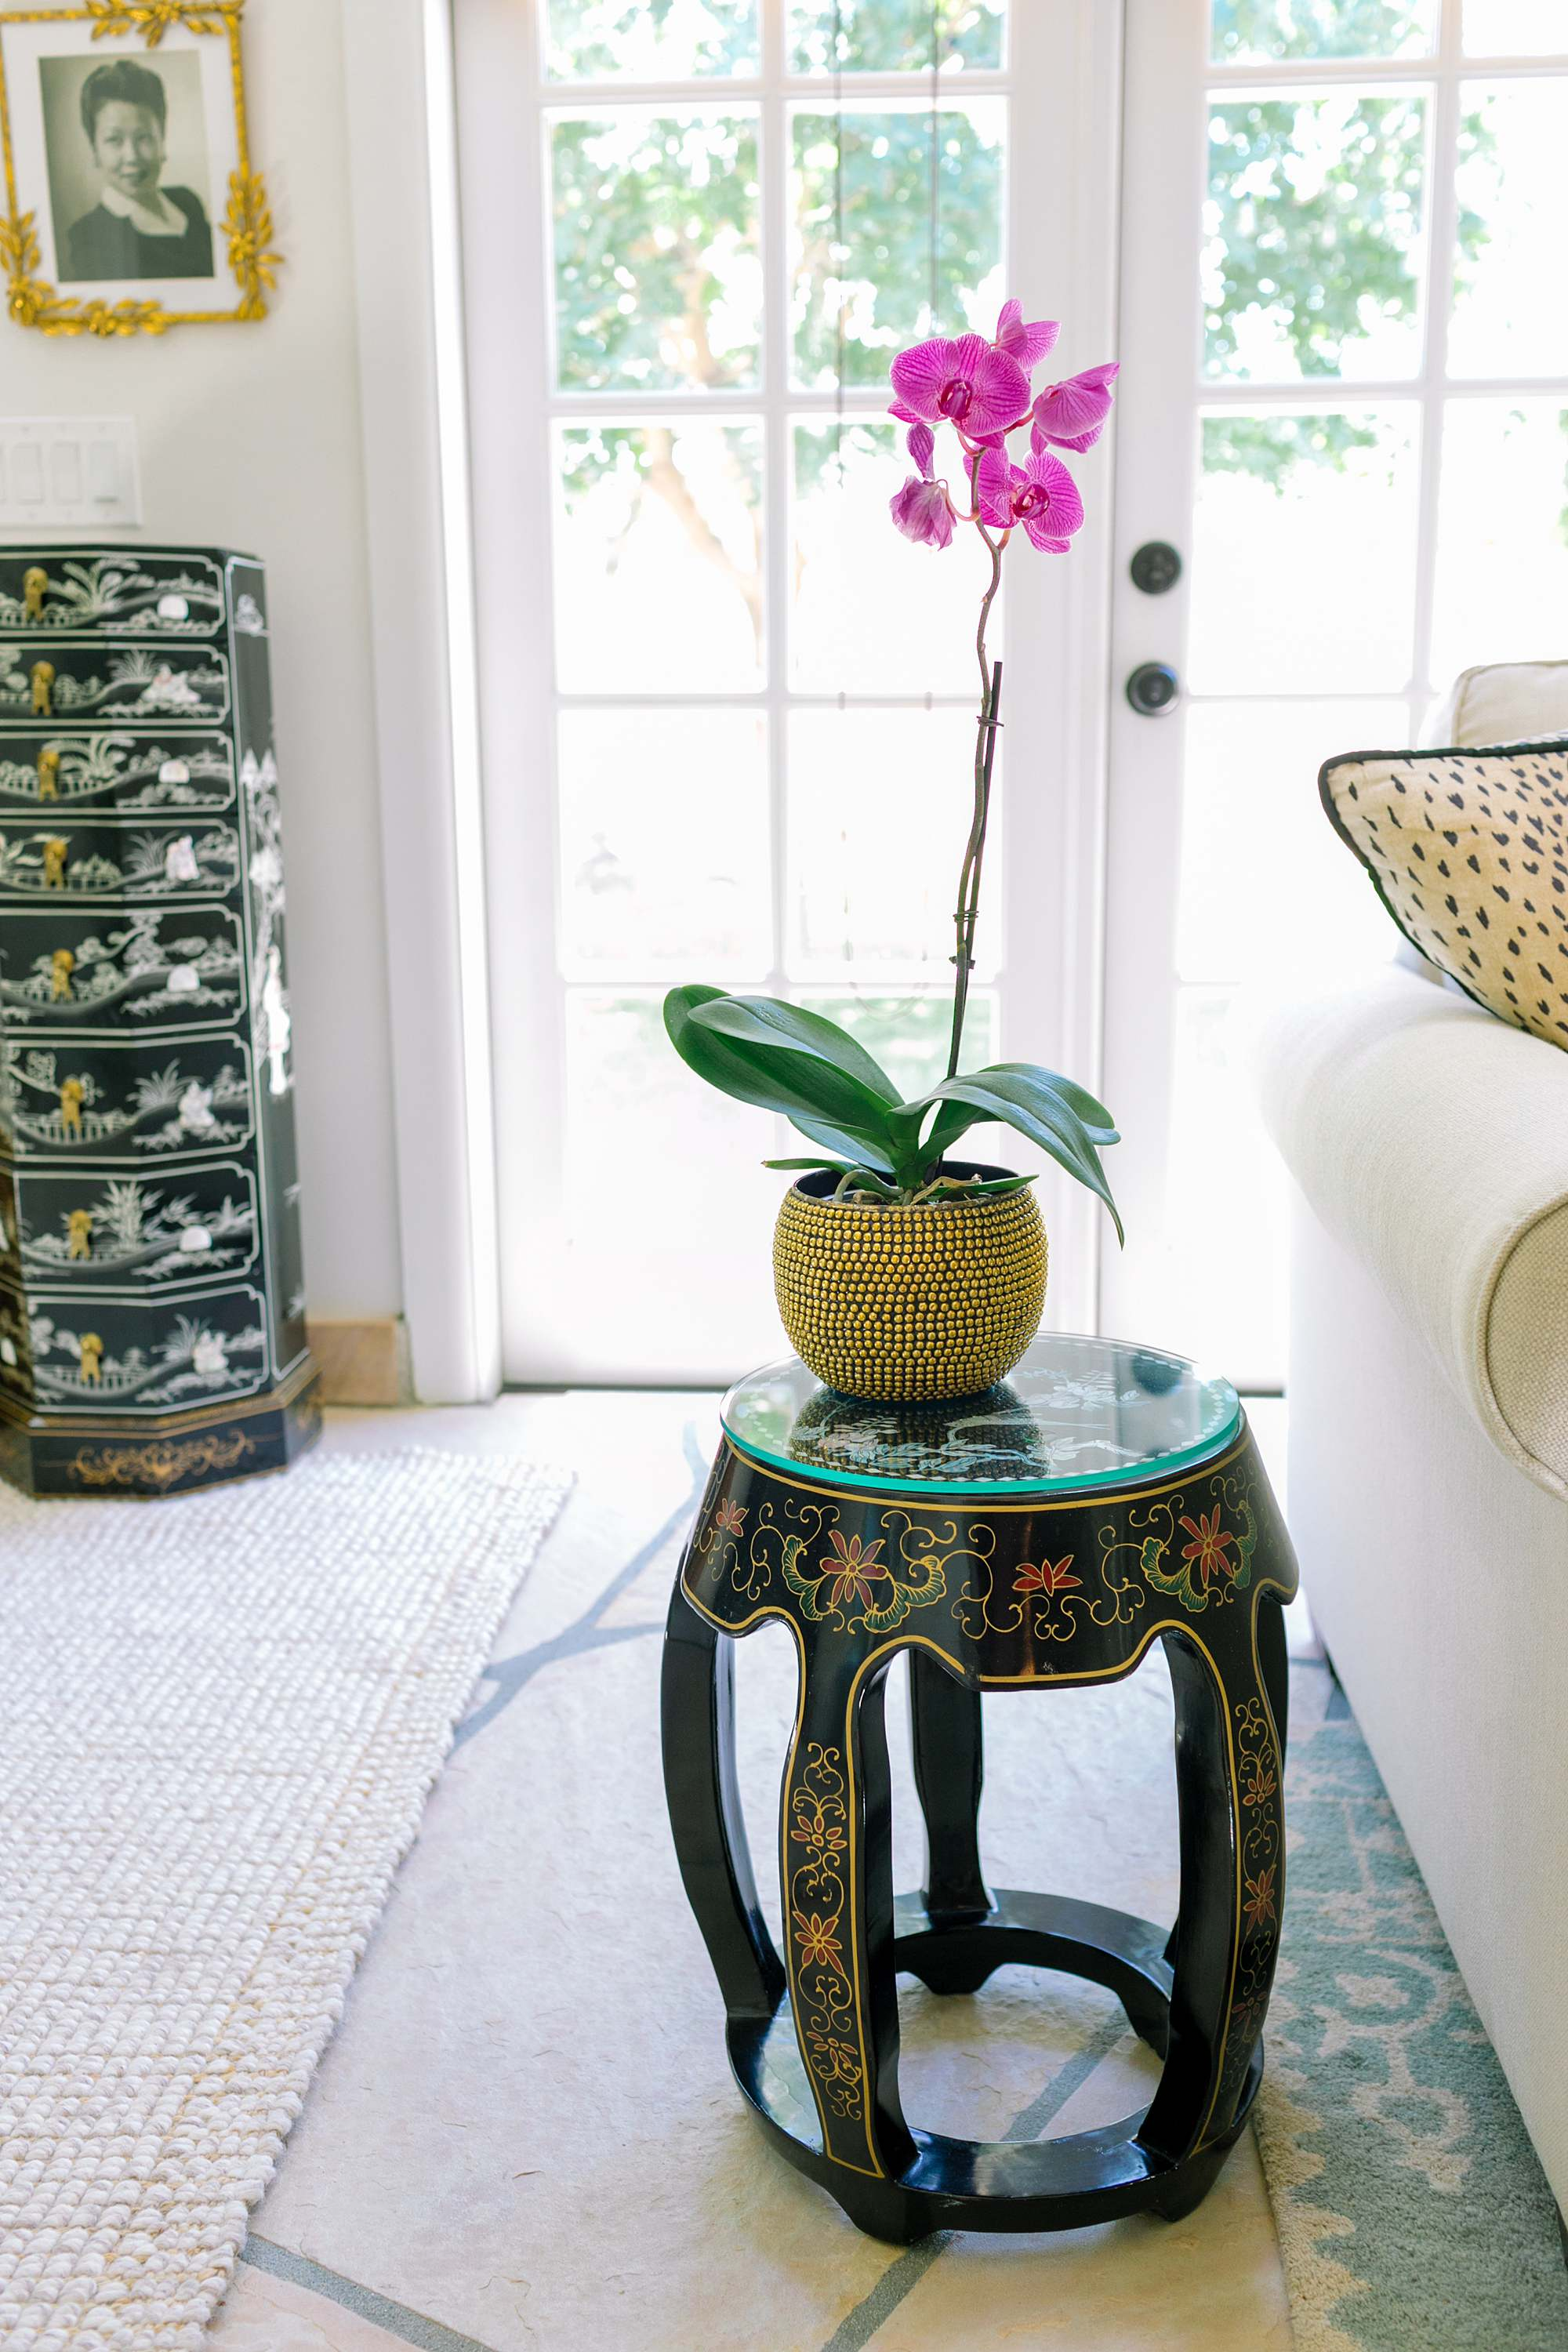 antique estate sale shopping tips and etiquette and how to find an estate sale melon asian stool